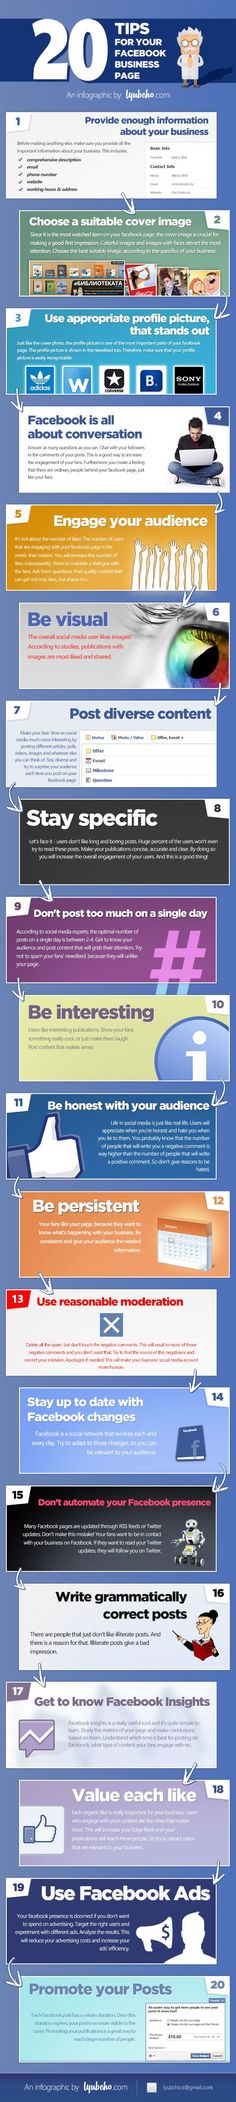 20 Tips for your Facebook Business Page #SocialMedia #WebsiteMagazine